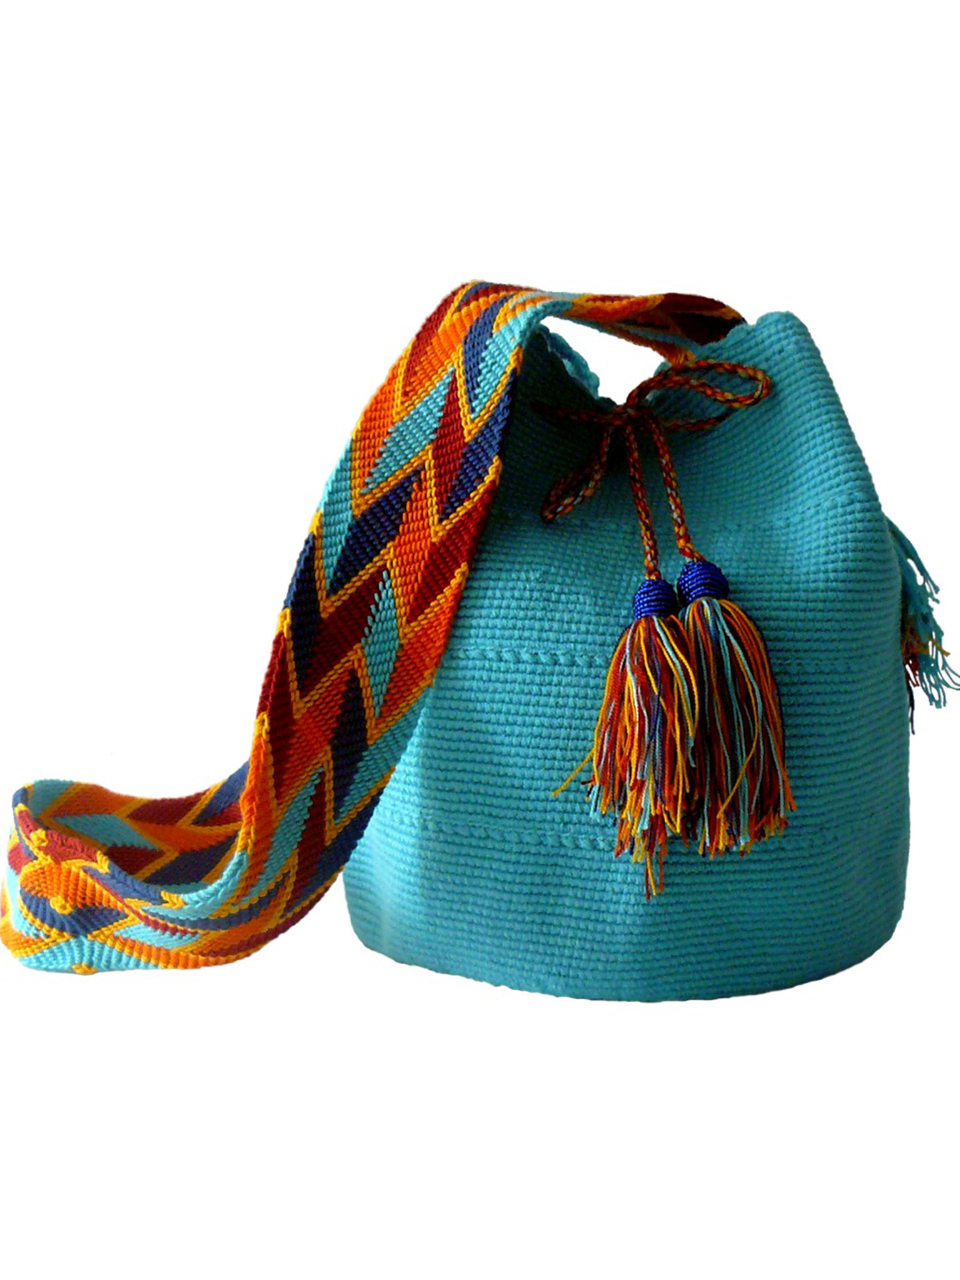 Turquoise woven shoulder bag with tassels and beads Palmazul Beachwear Wayuu Mochila